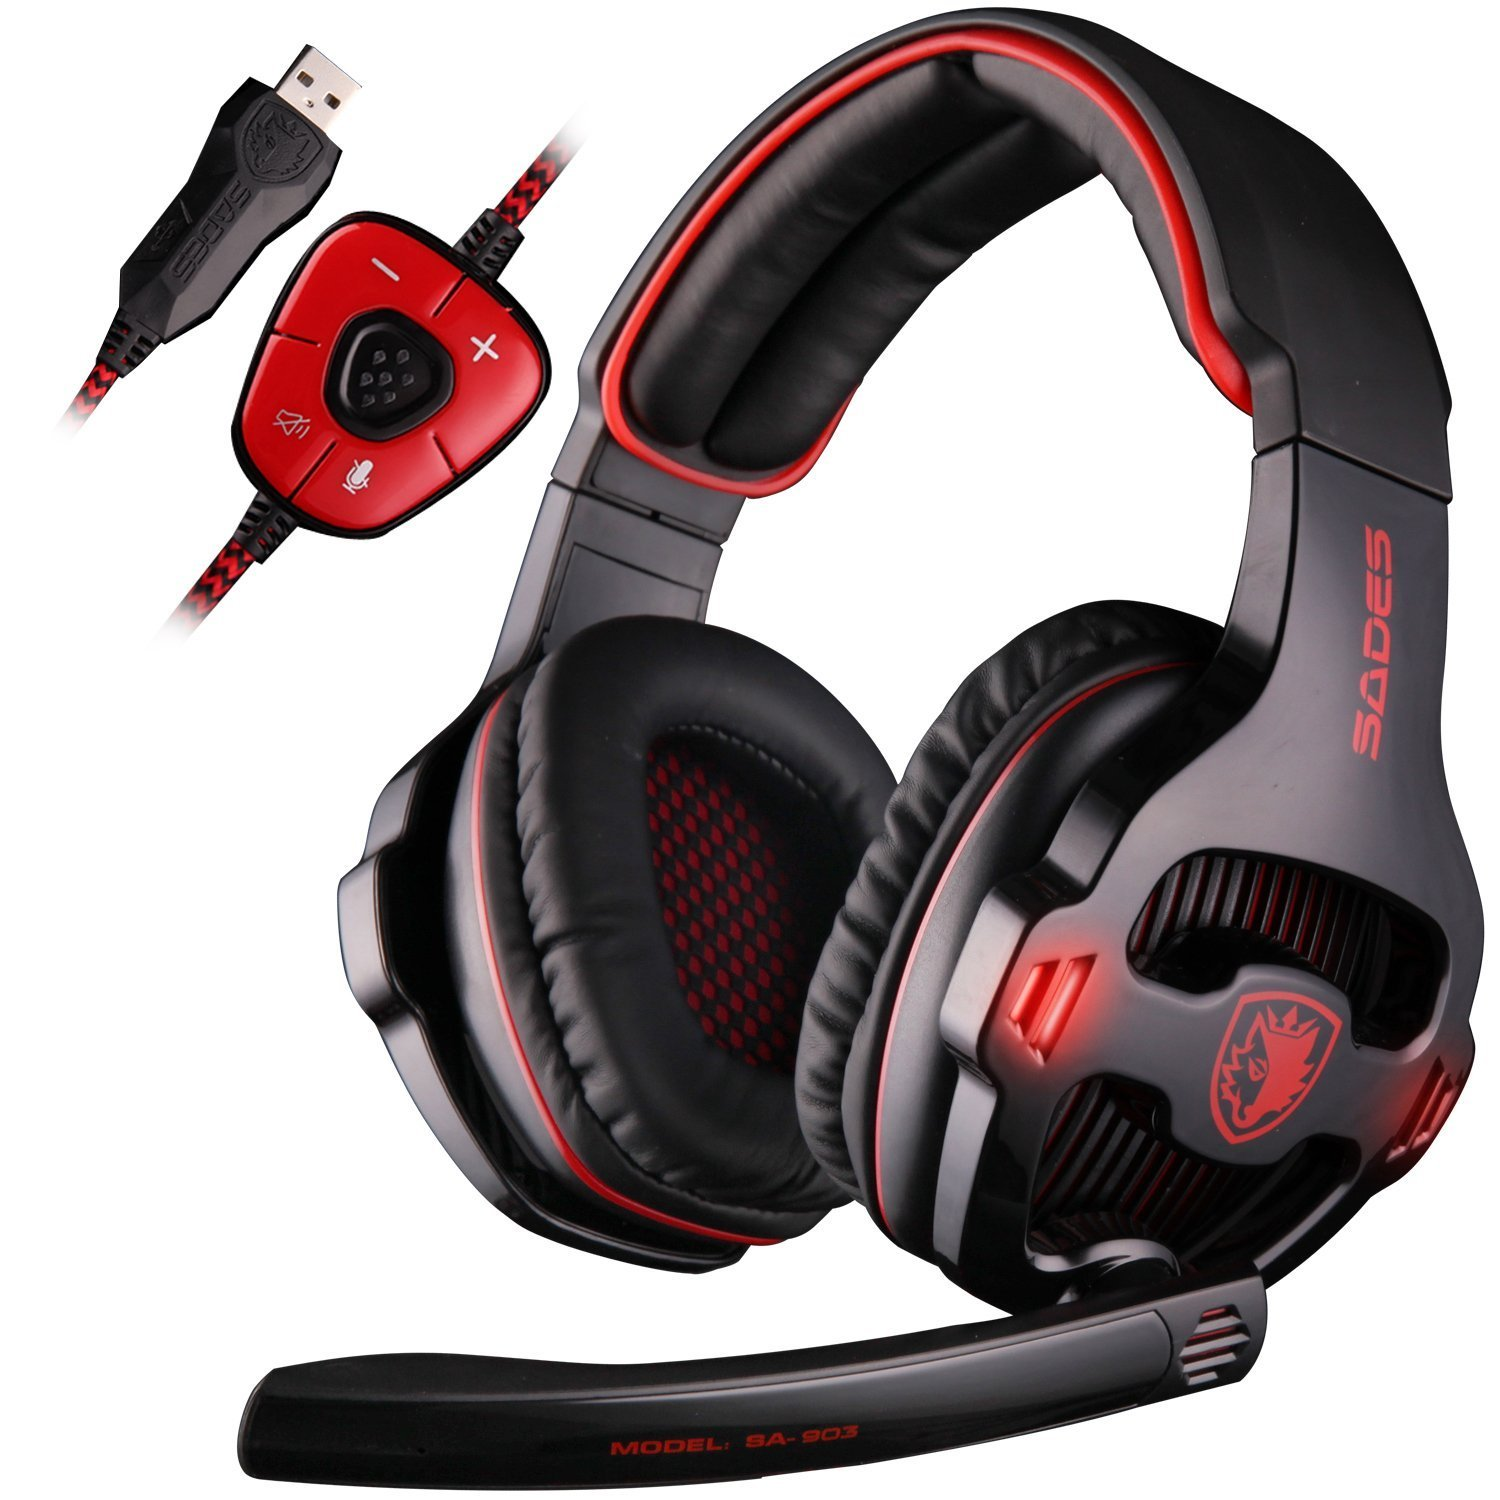 Cuffie gaming microfono audio surround 7.1 SADES SA903